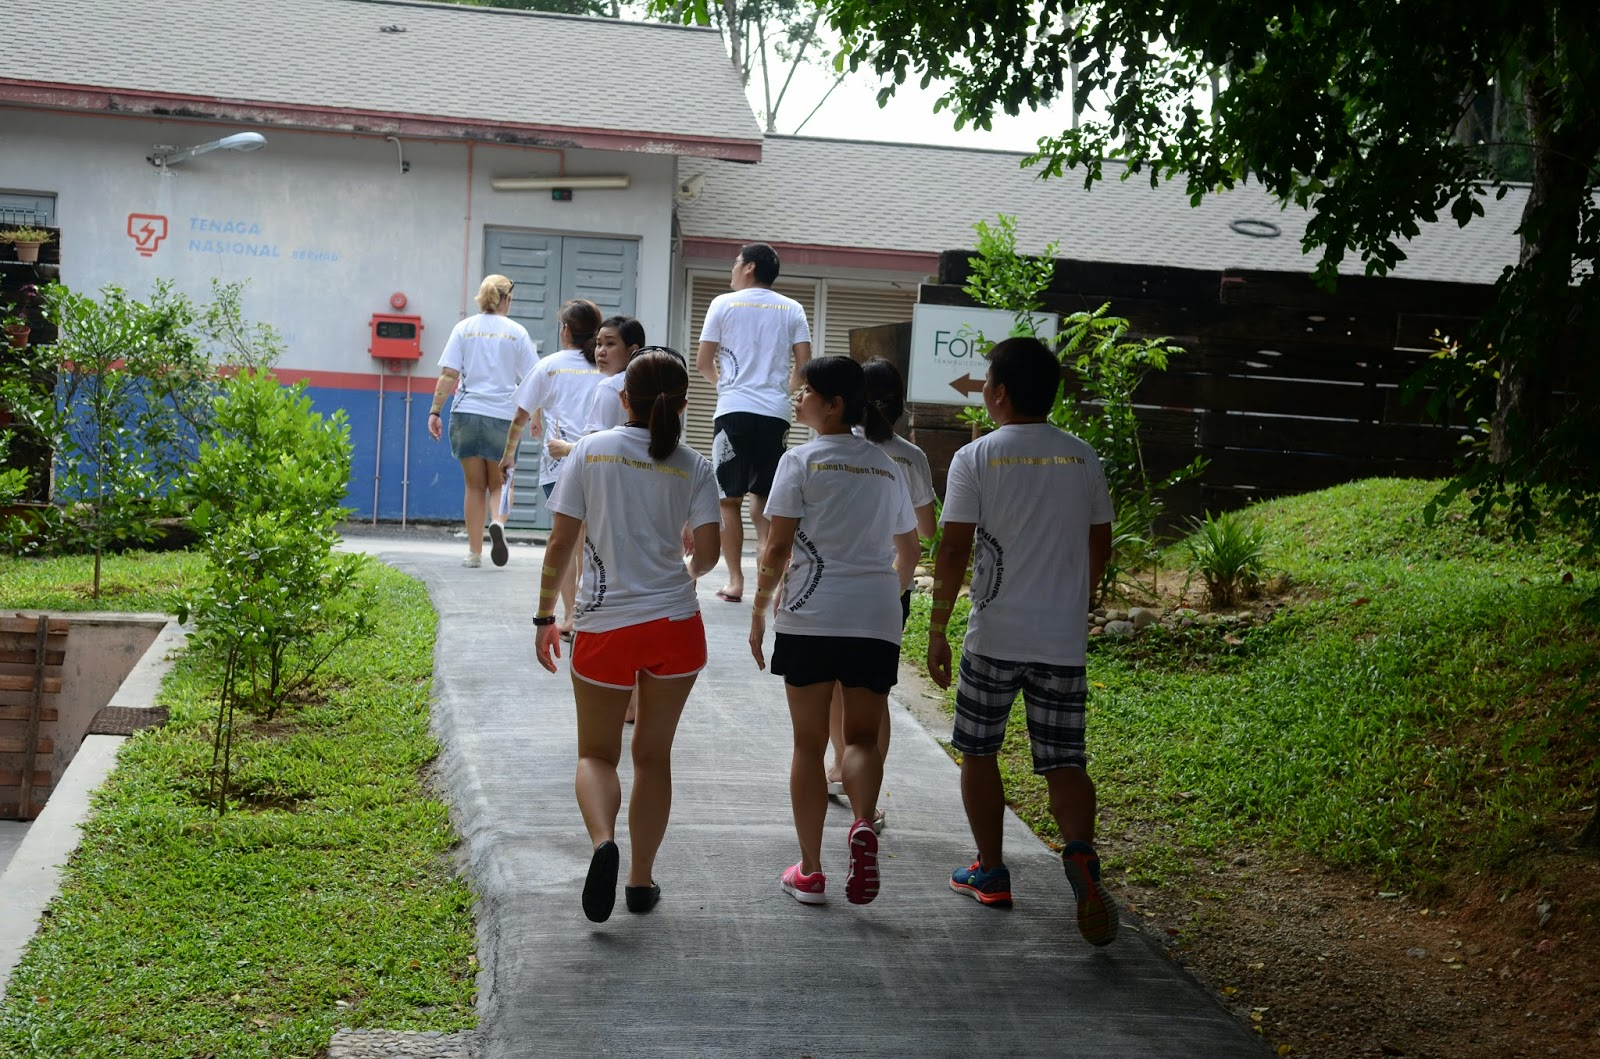 Malacca Adventure Teambuilding - 5 Elements Concept - www.bigtreetours.com